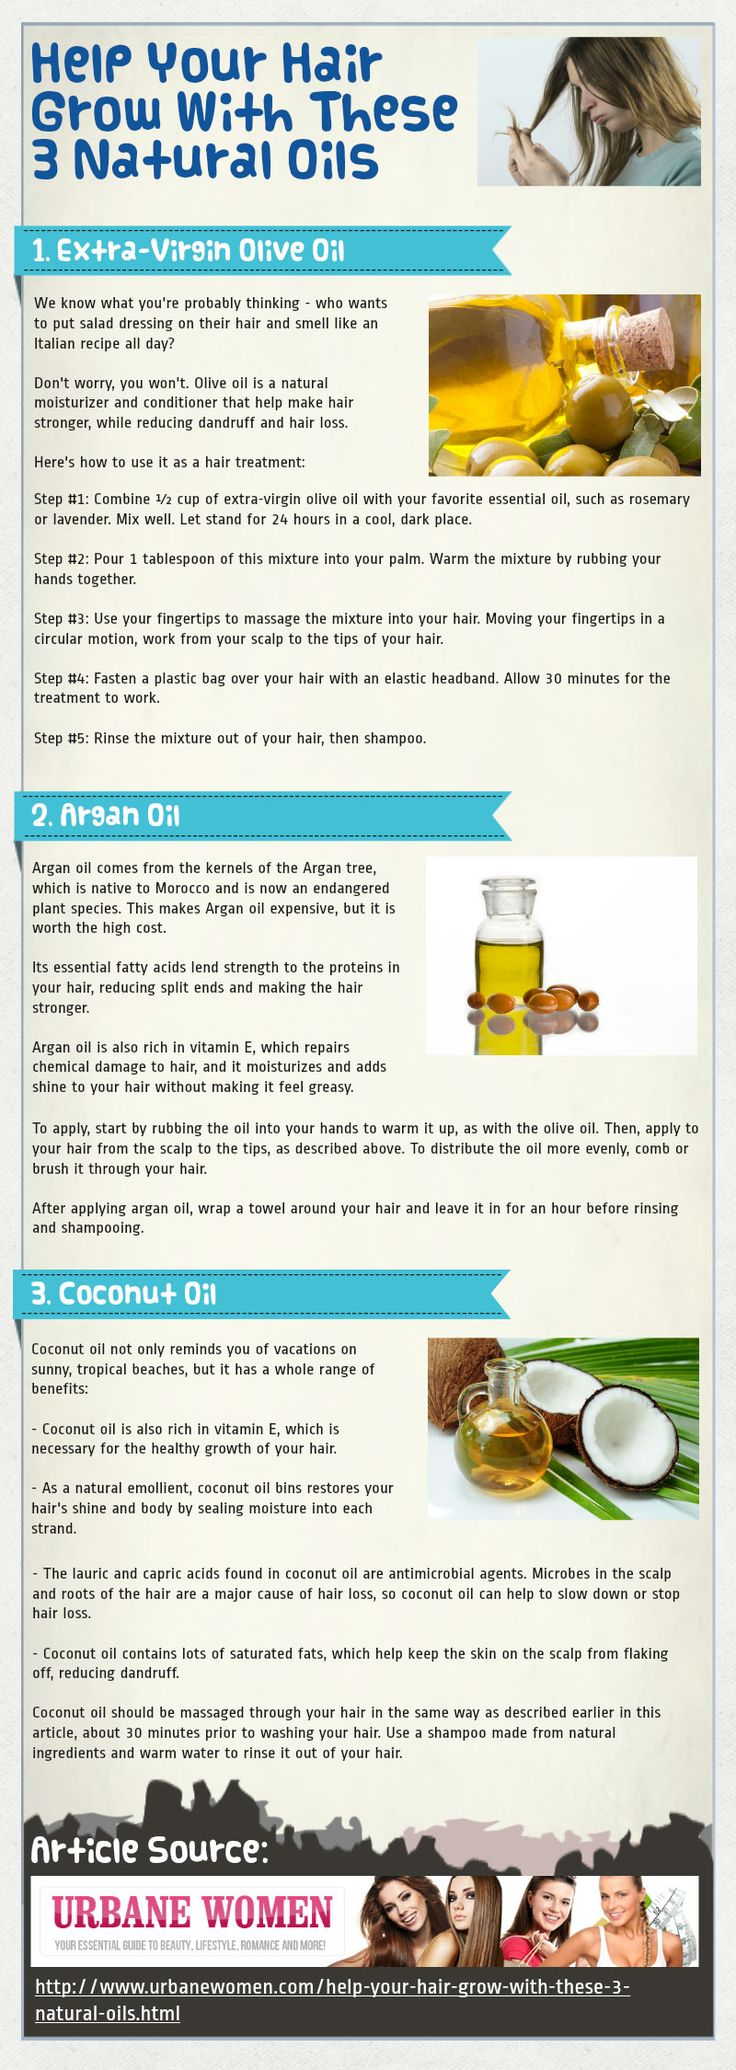 How to Make Your Hair Grow Faster and Longer with These 3 Natural Hair Oil...